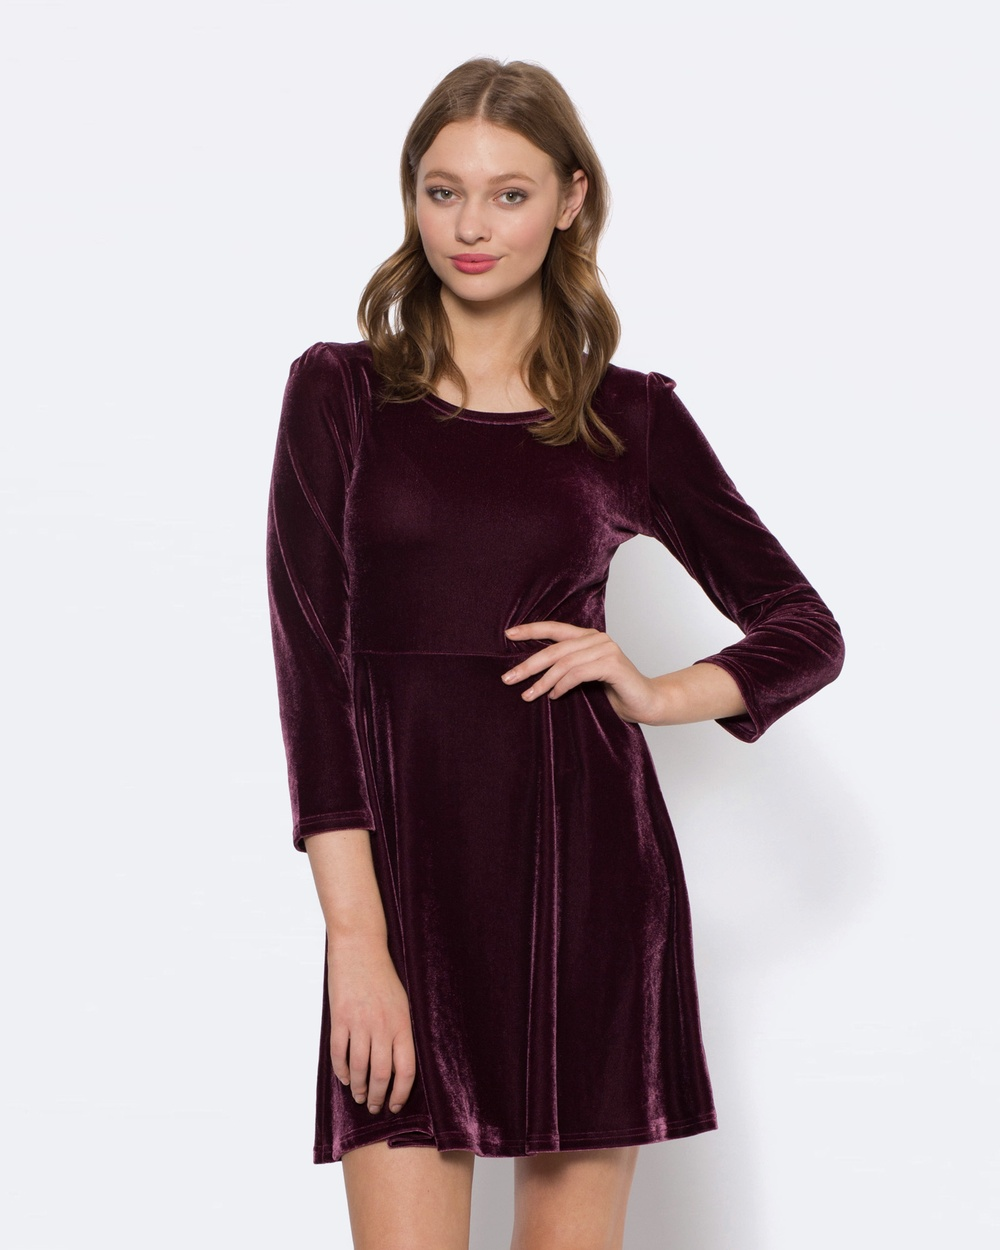 Princess Highway Adora Velvet Dress Dresses Purple Adora Velvet Dress